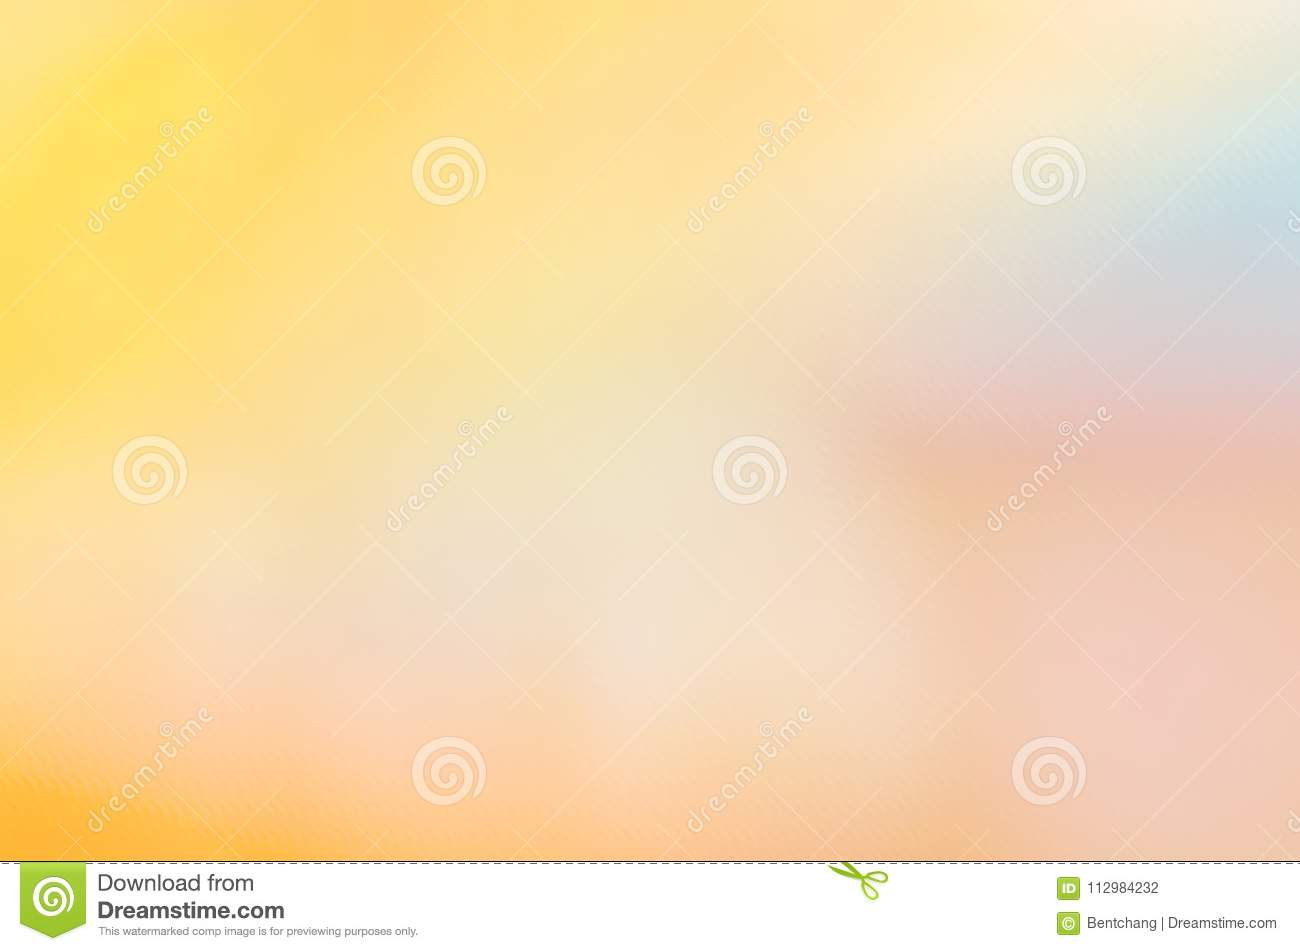 Background abstract motion, blur for design. Colorful, artwork, nature & wave.